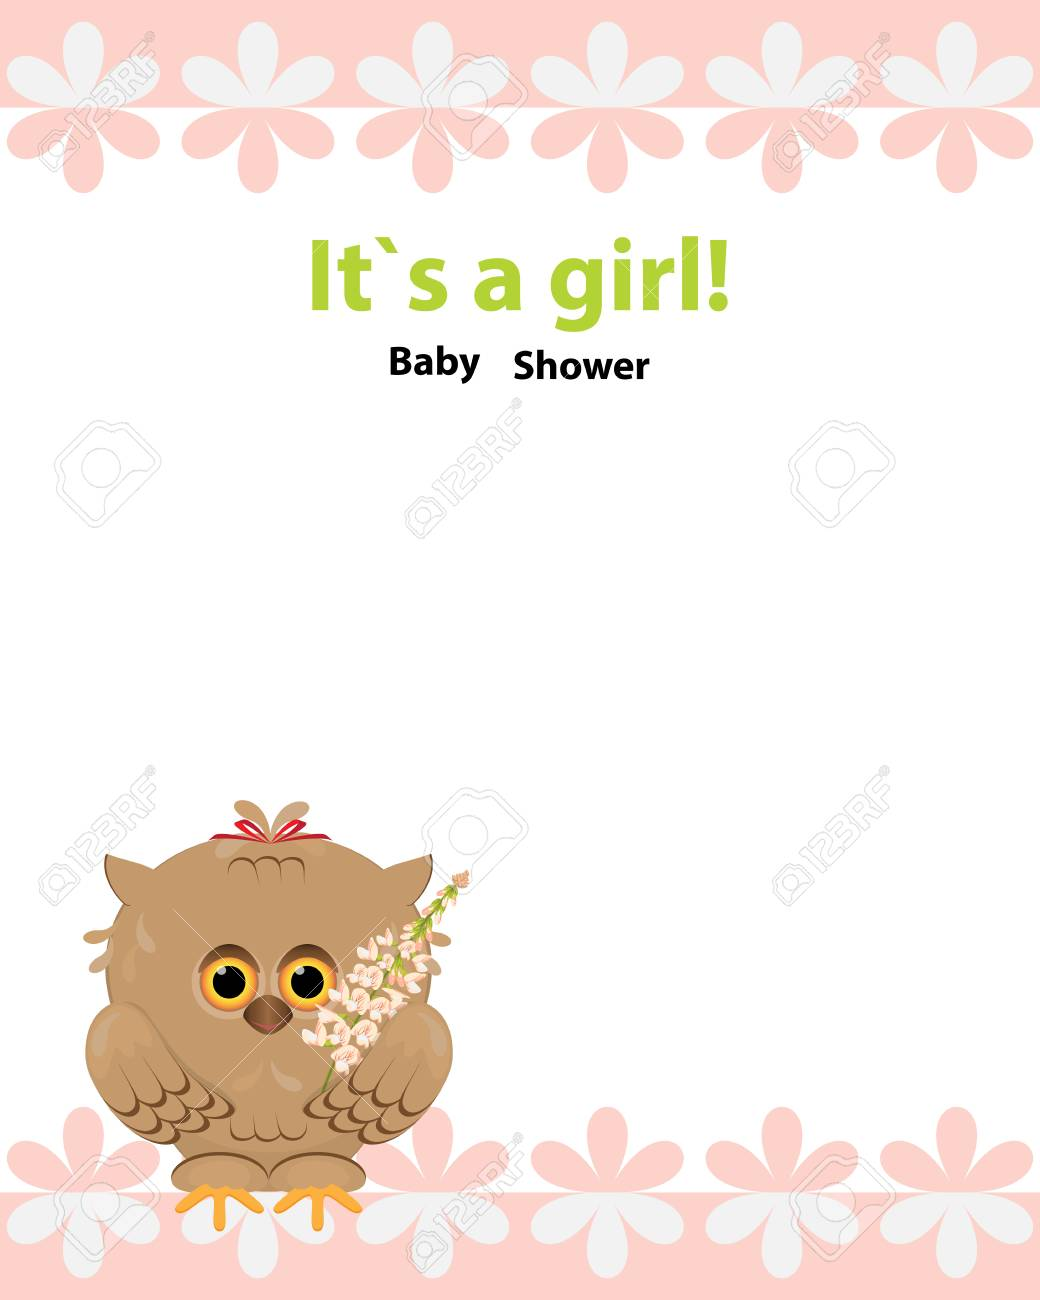 Baby Shower Invitation Card Design Owl With Bow Toy Flower Galega